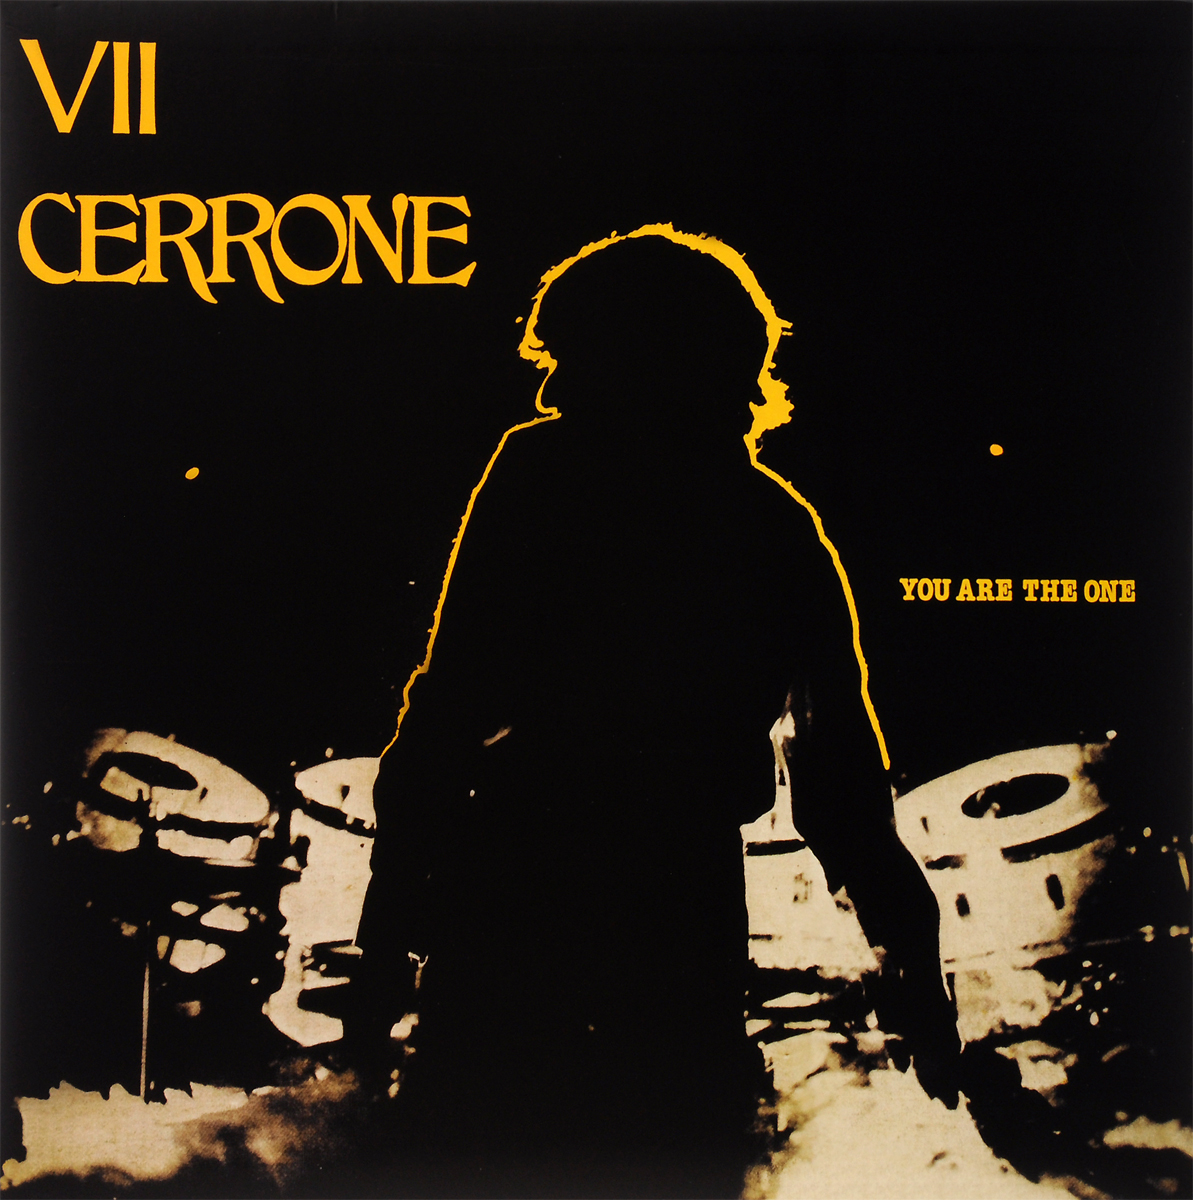 Cerrone,Джоcелин Браун Cerrone, Jocelyn Brown. Cerrone VII. You Are The One (LP + CD) все цены